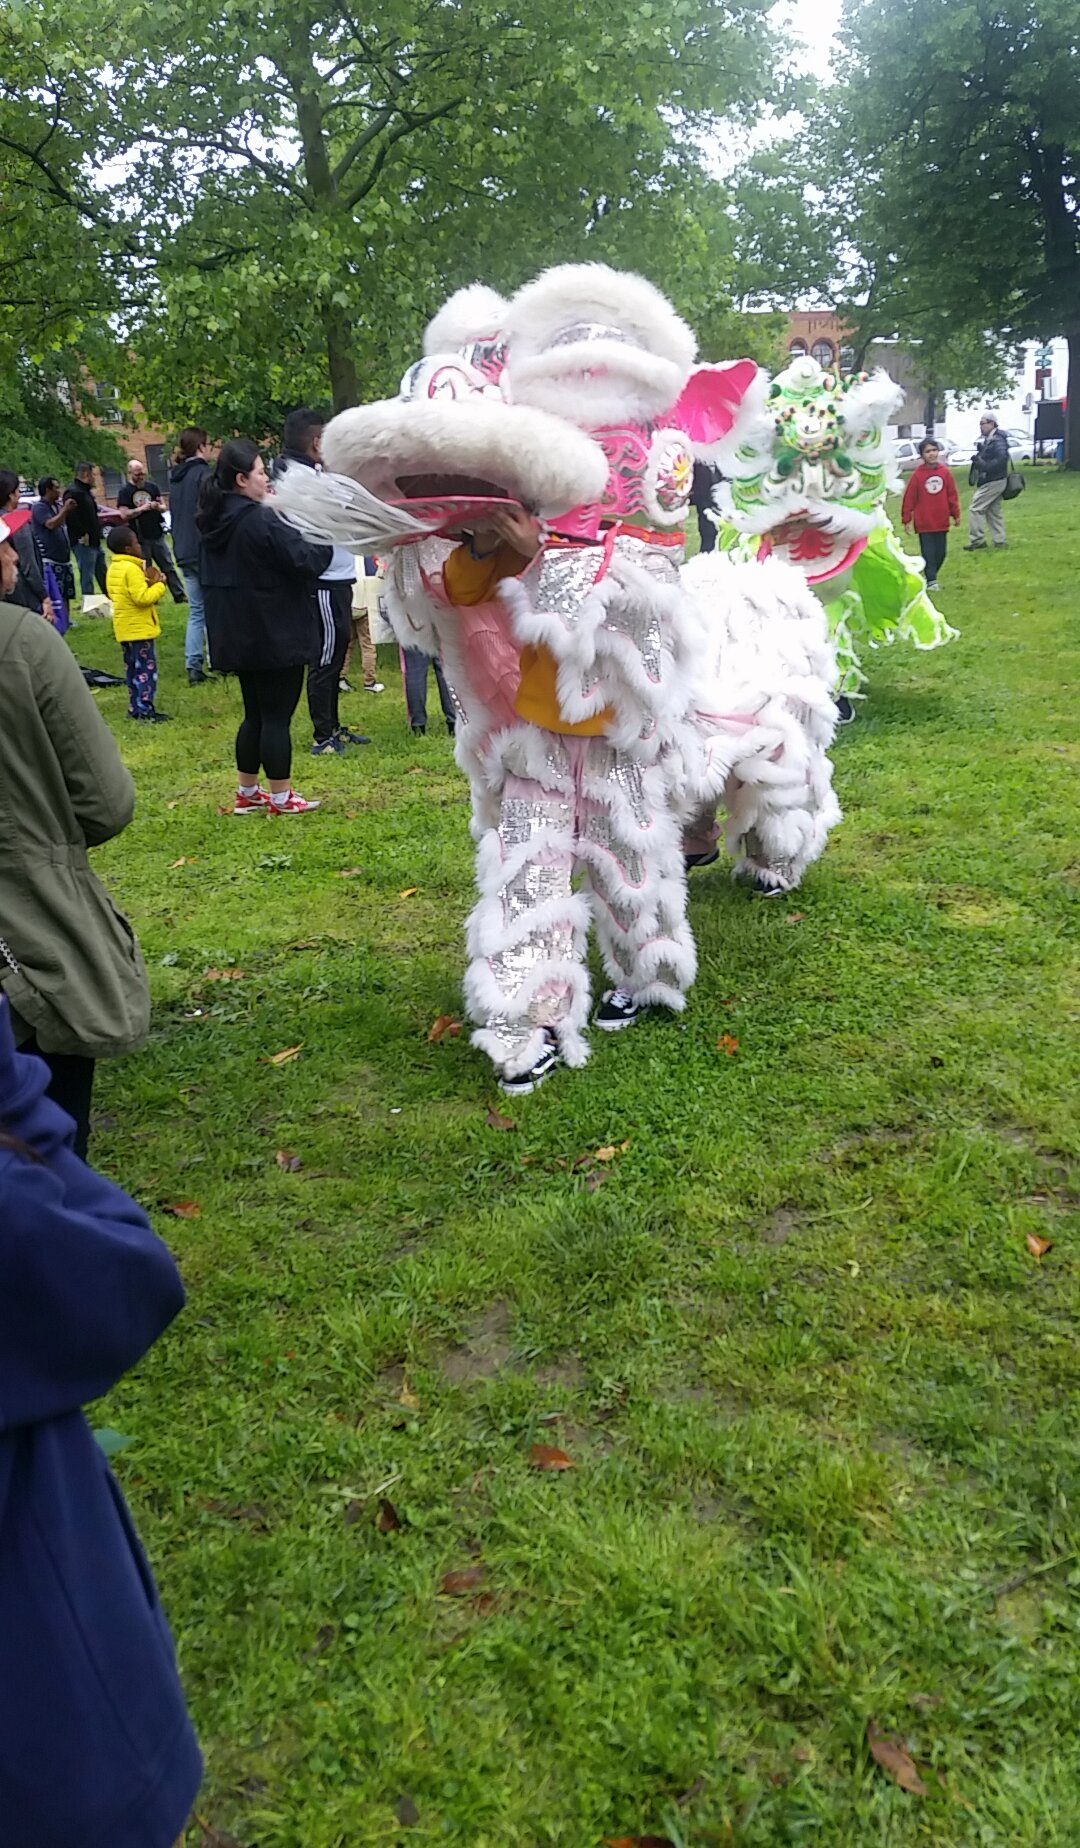 Lion dance performance during Asian American Pacific Islander Heritage Celebration at Mifflin Square Park. Credit: Jishava Patel